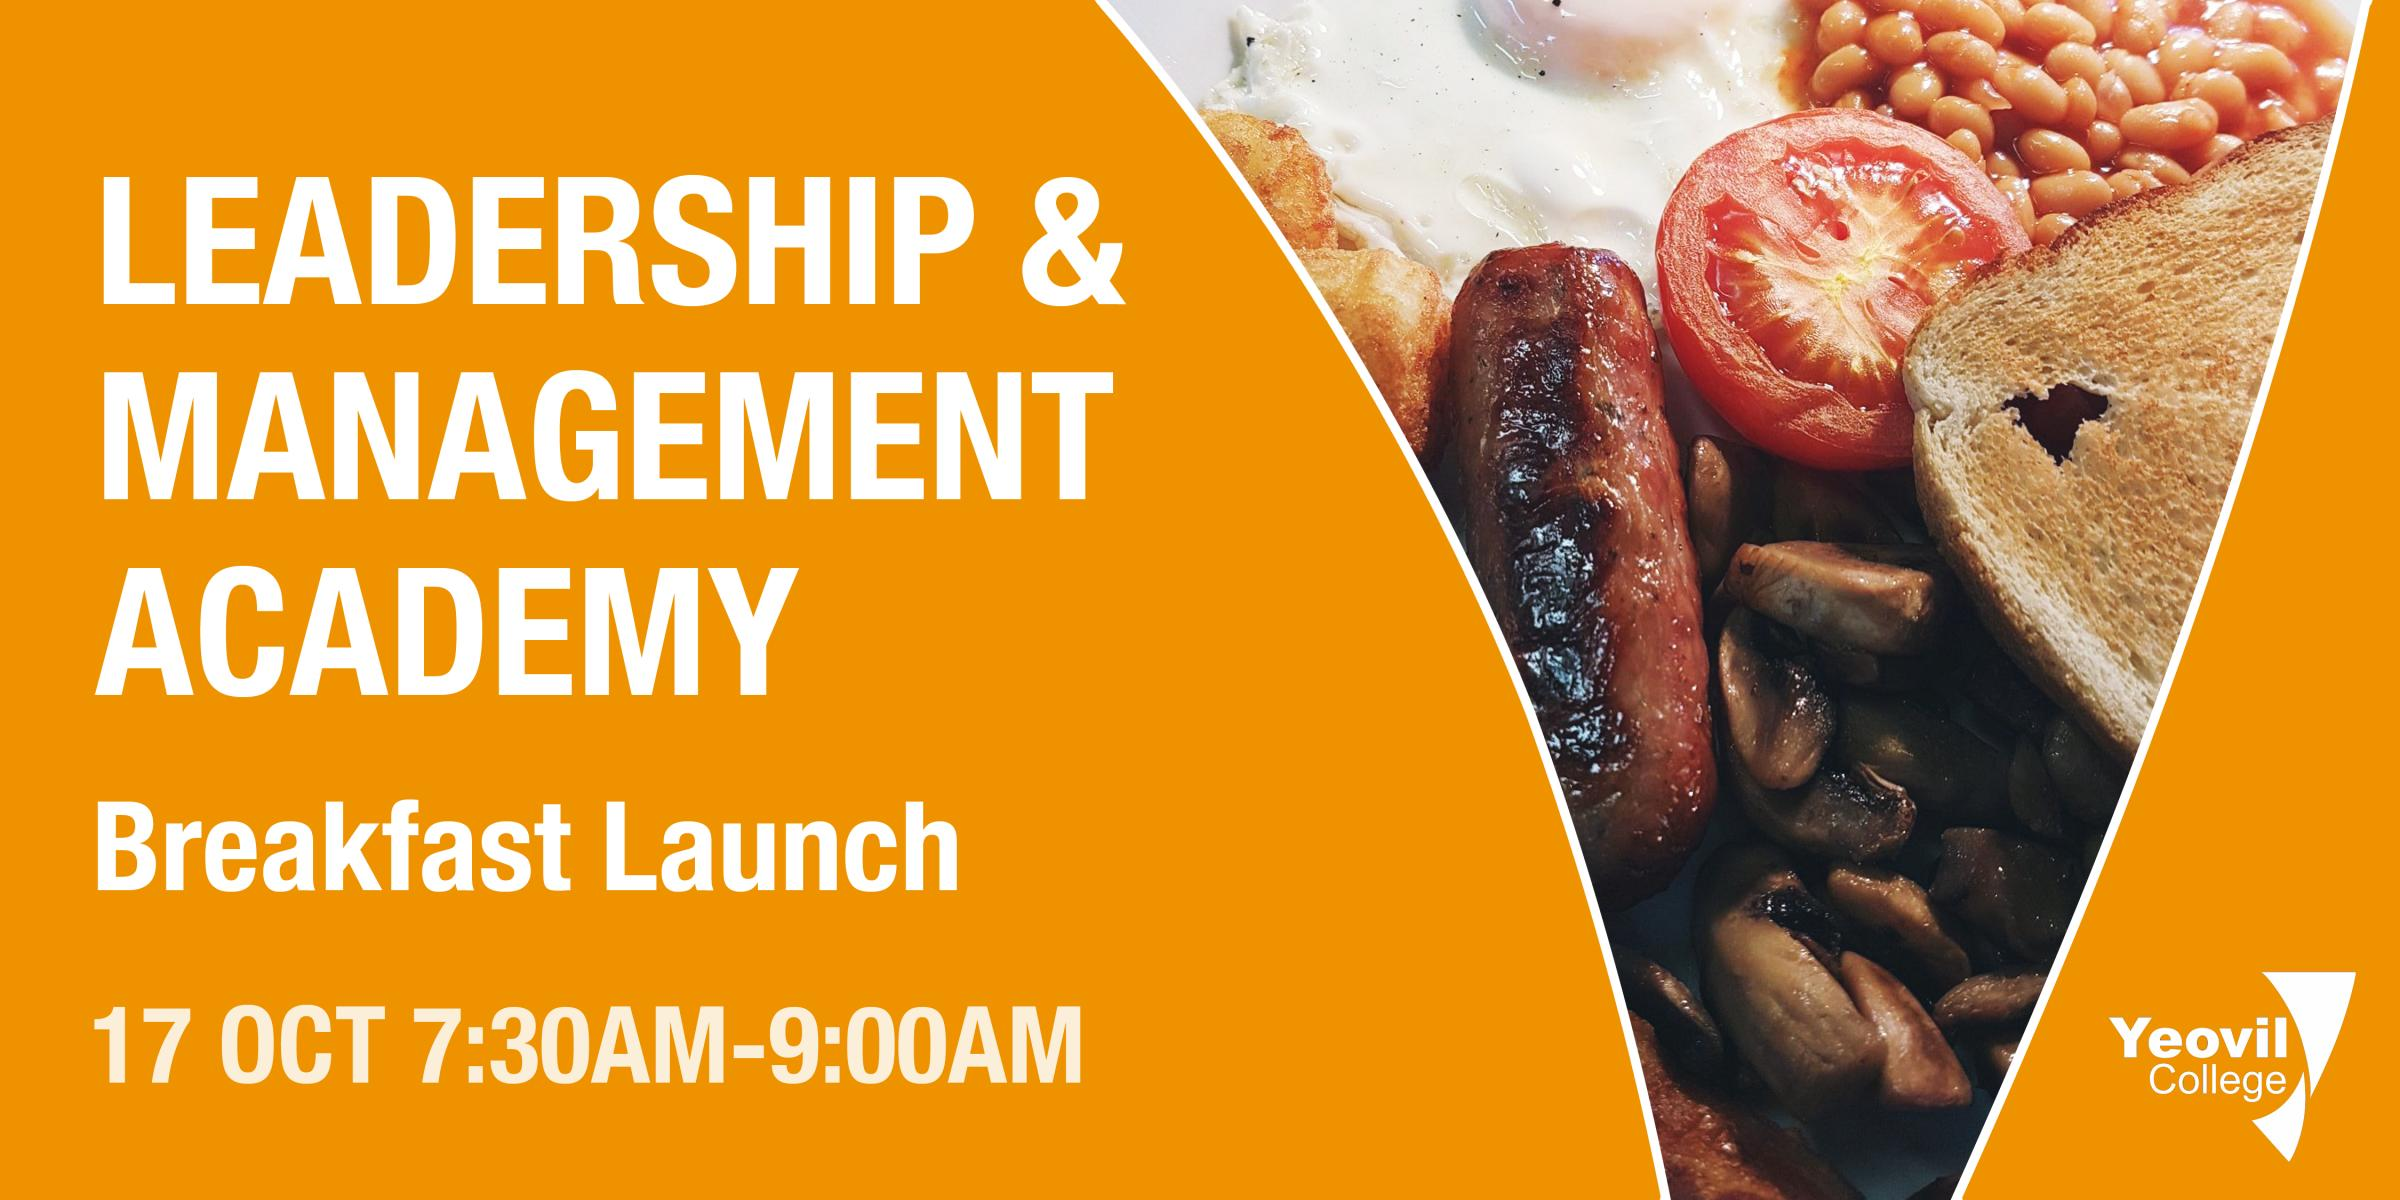 Leadership & Management Academy - Breakfast Launch